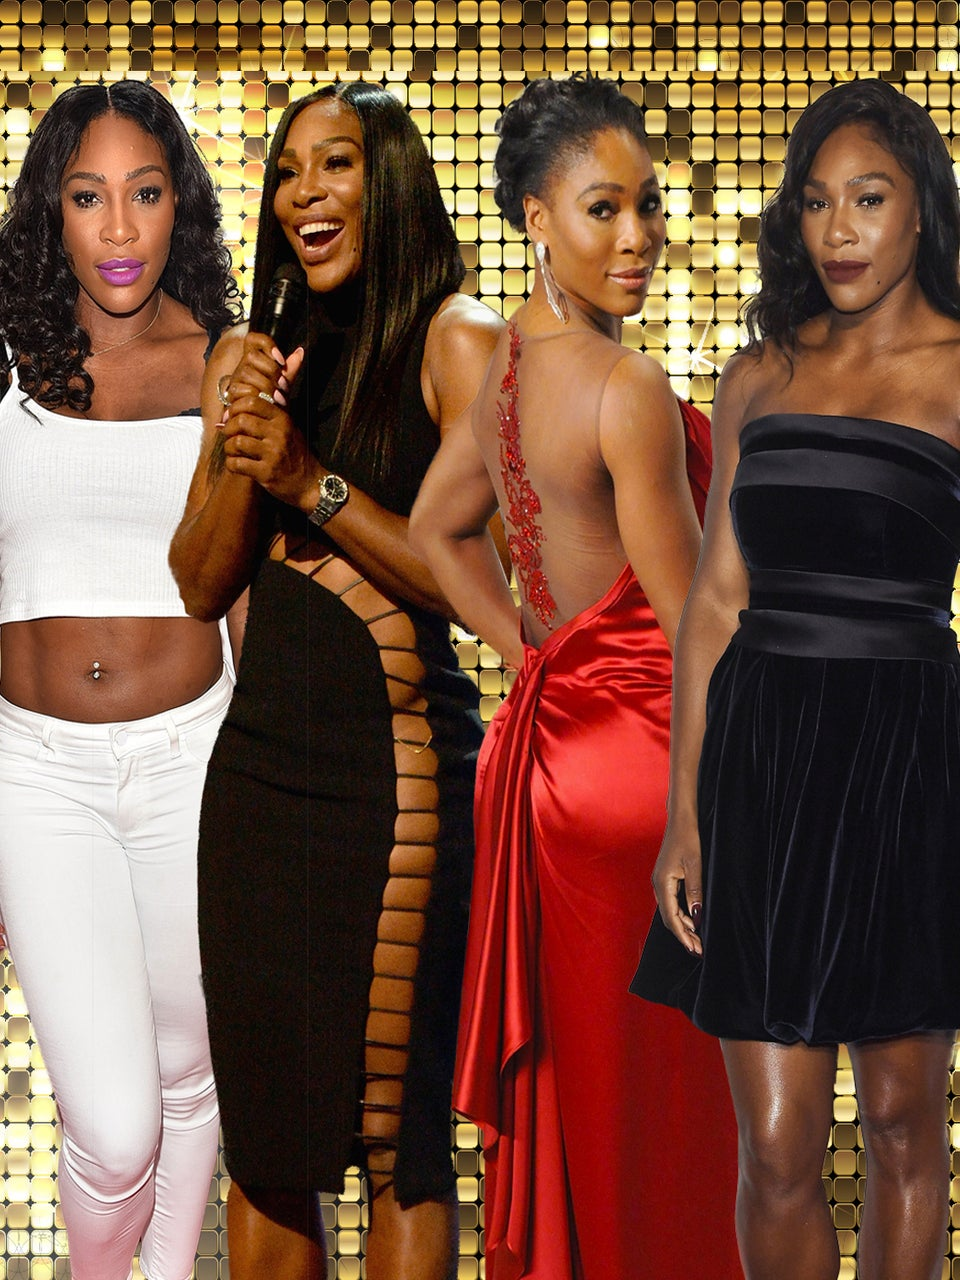 Behold, Serena Williams' Most Body Confident Fashion Moments